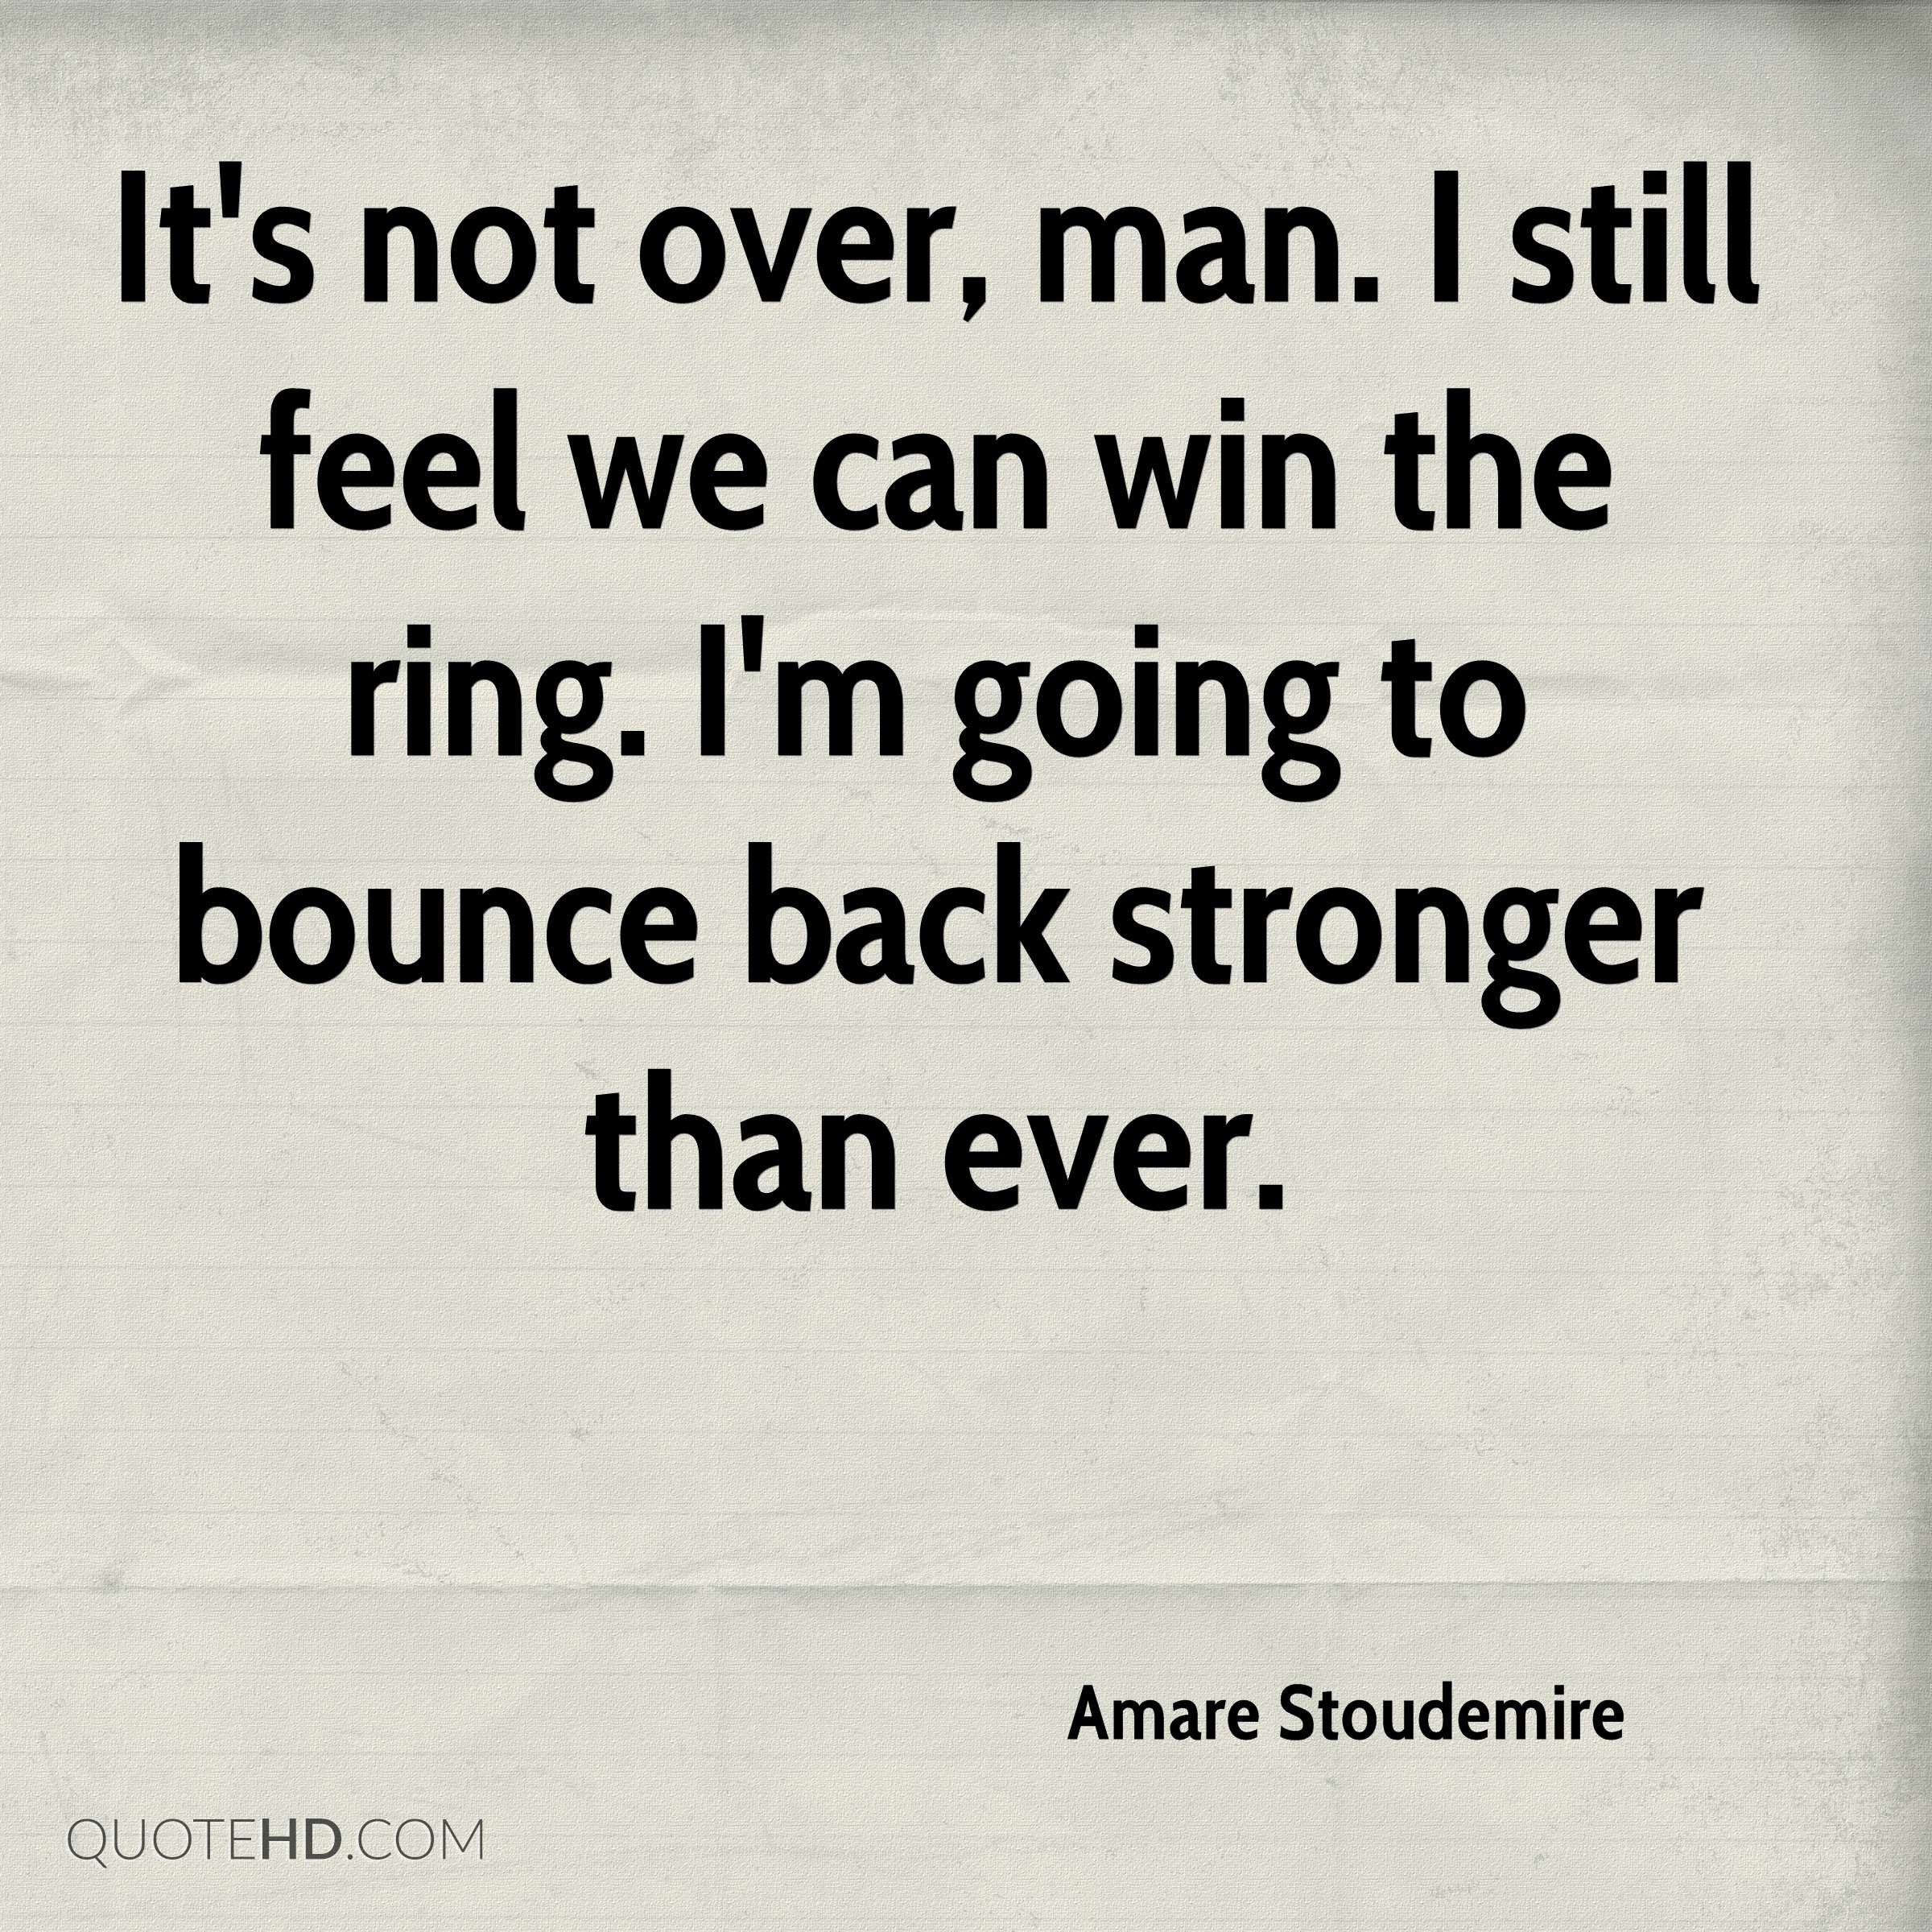 Amare Stoudemire Quotes Quotehd